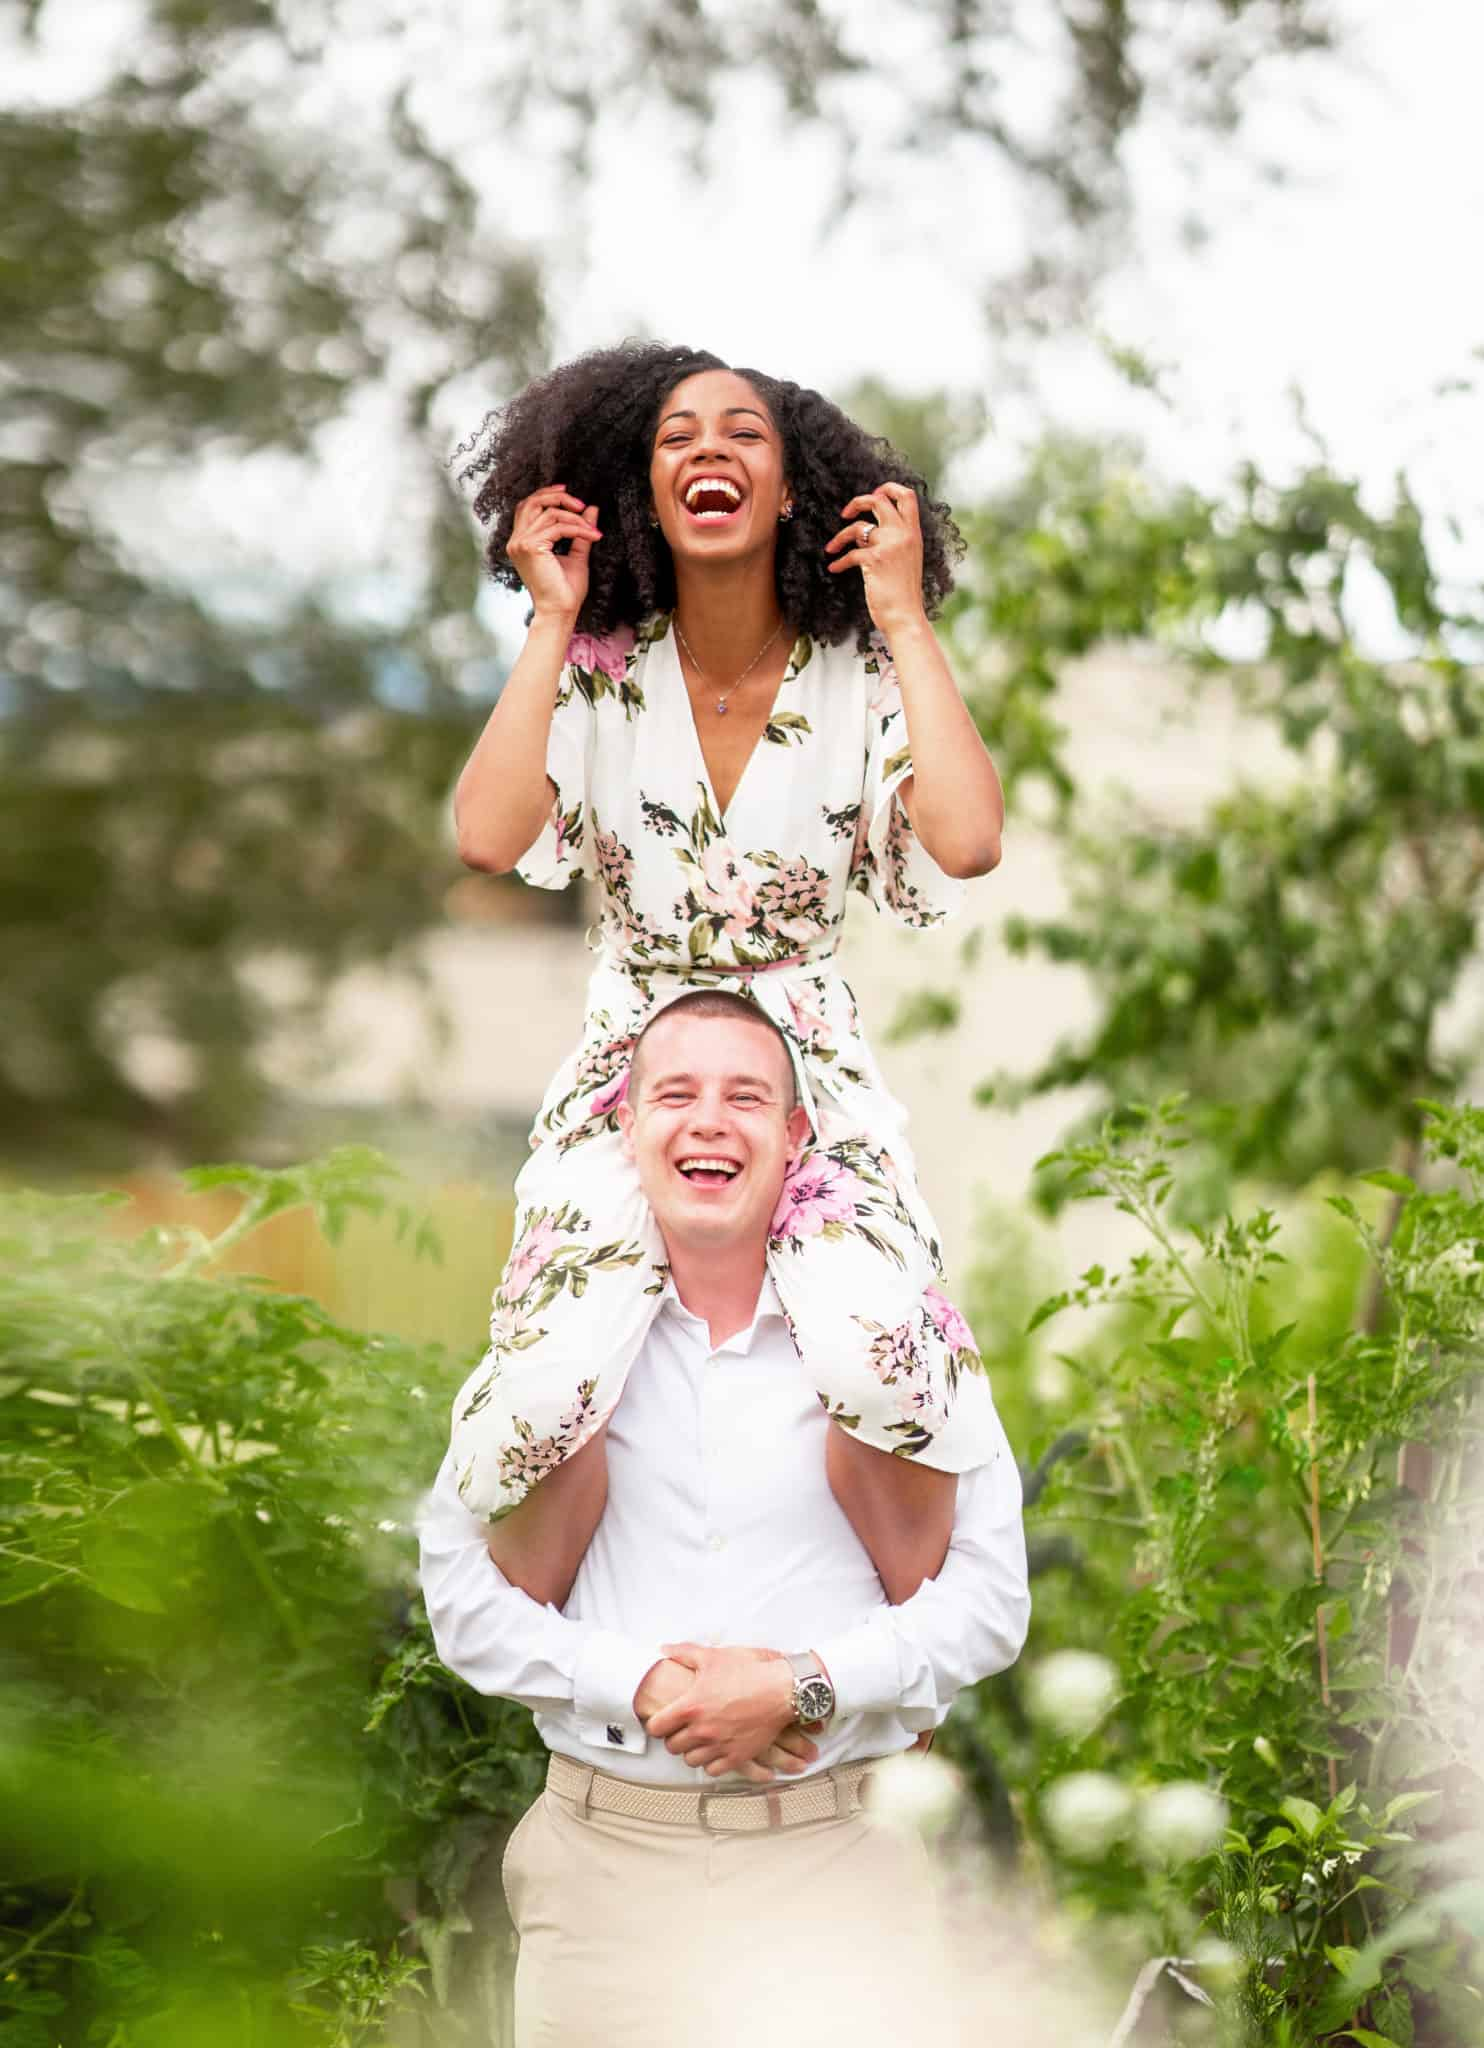 Natural Hair Laughing Engagement Pictures | Interracial Relationship